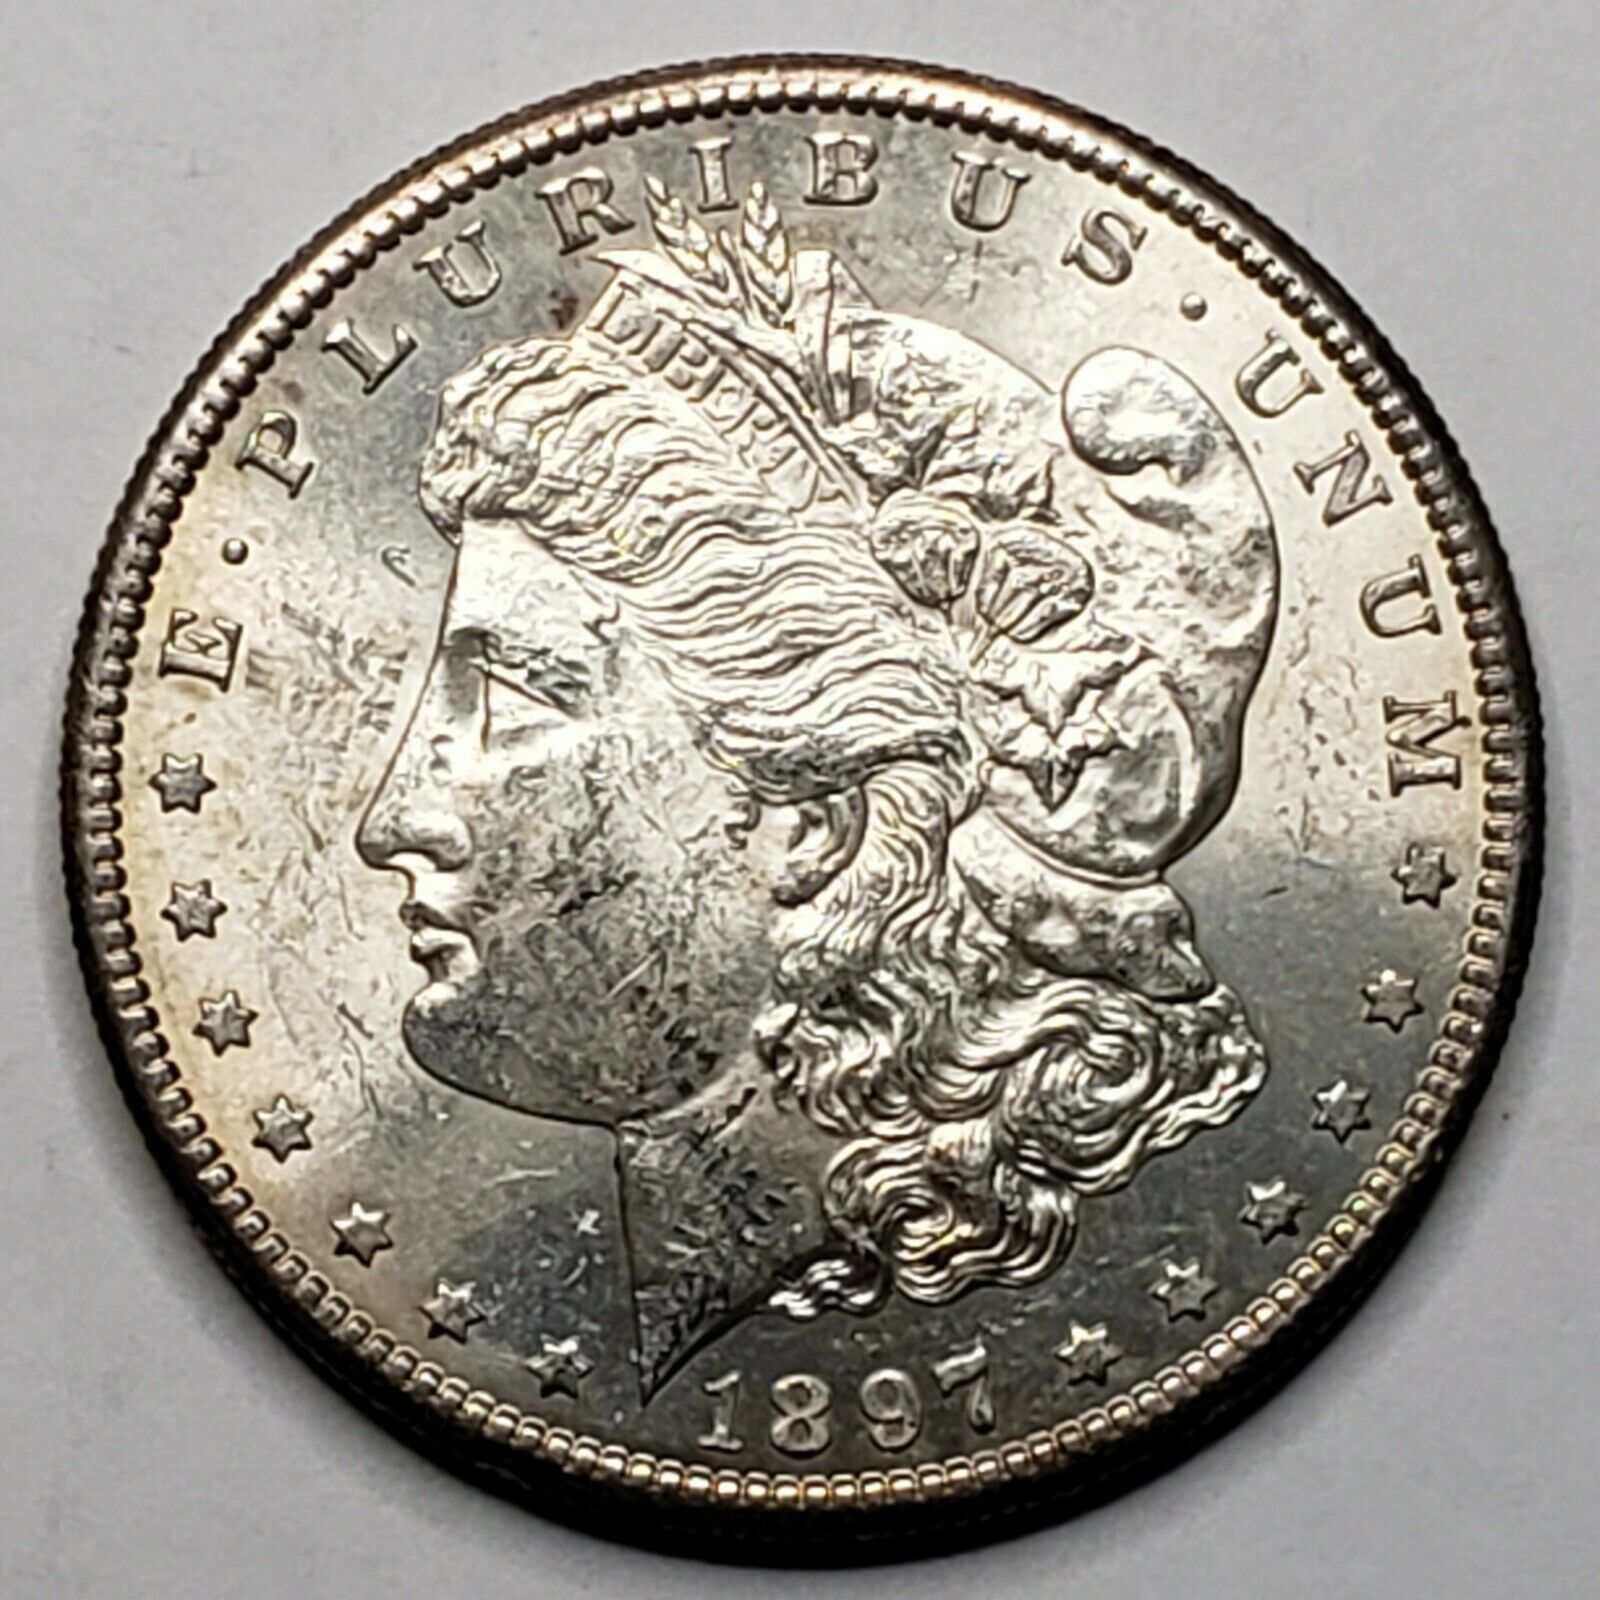 1897S MORGAN SILVER $1 DOLLAR Coin Lot# 519-38